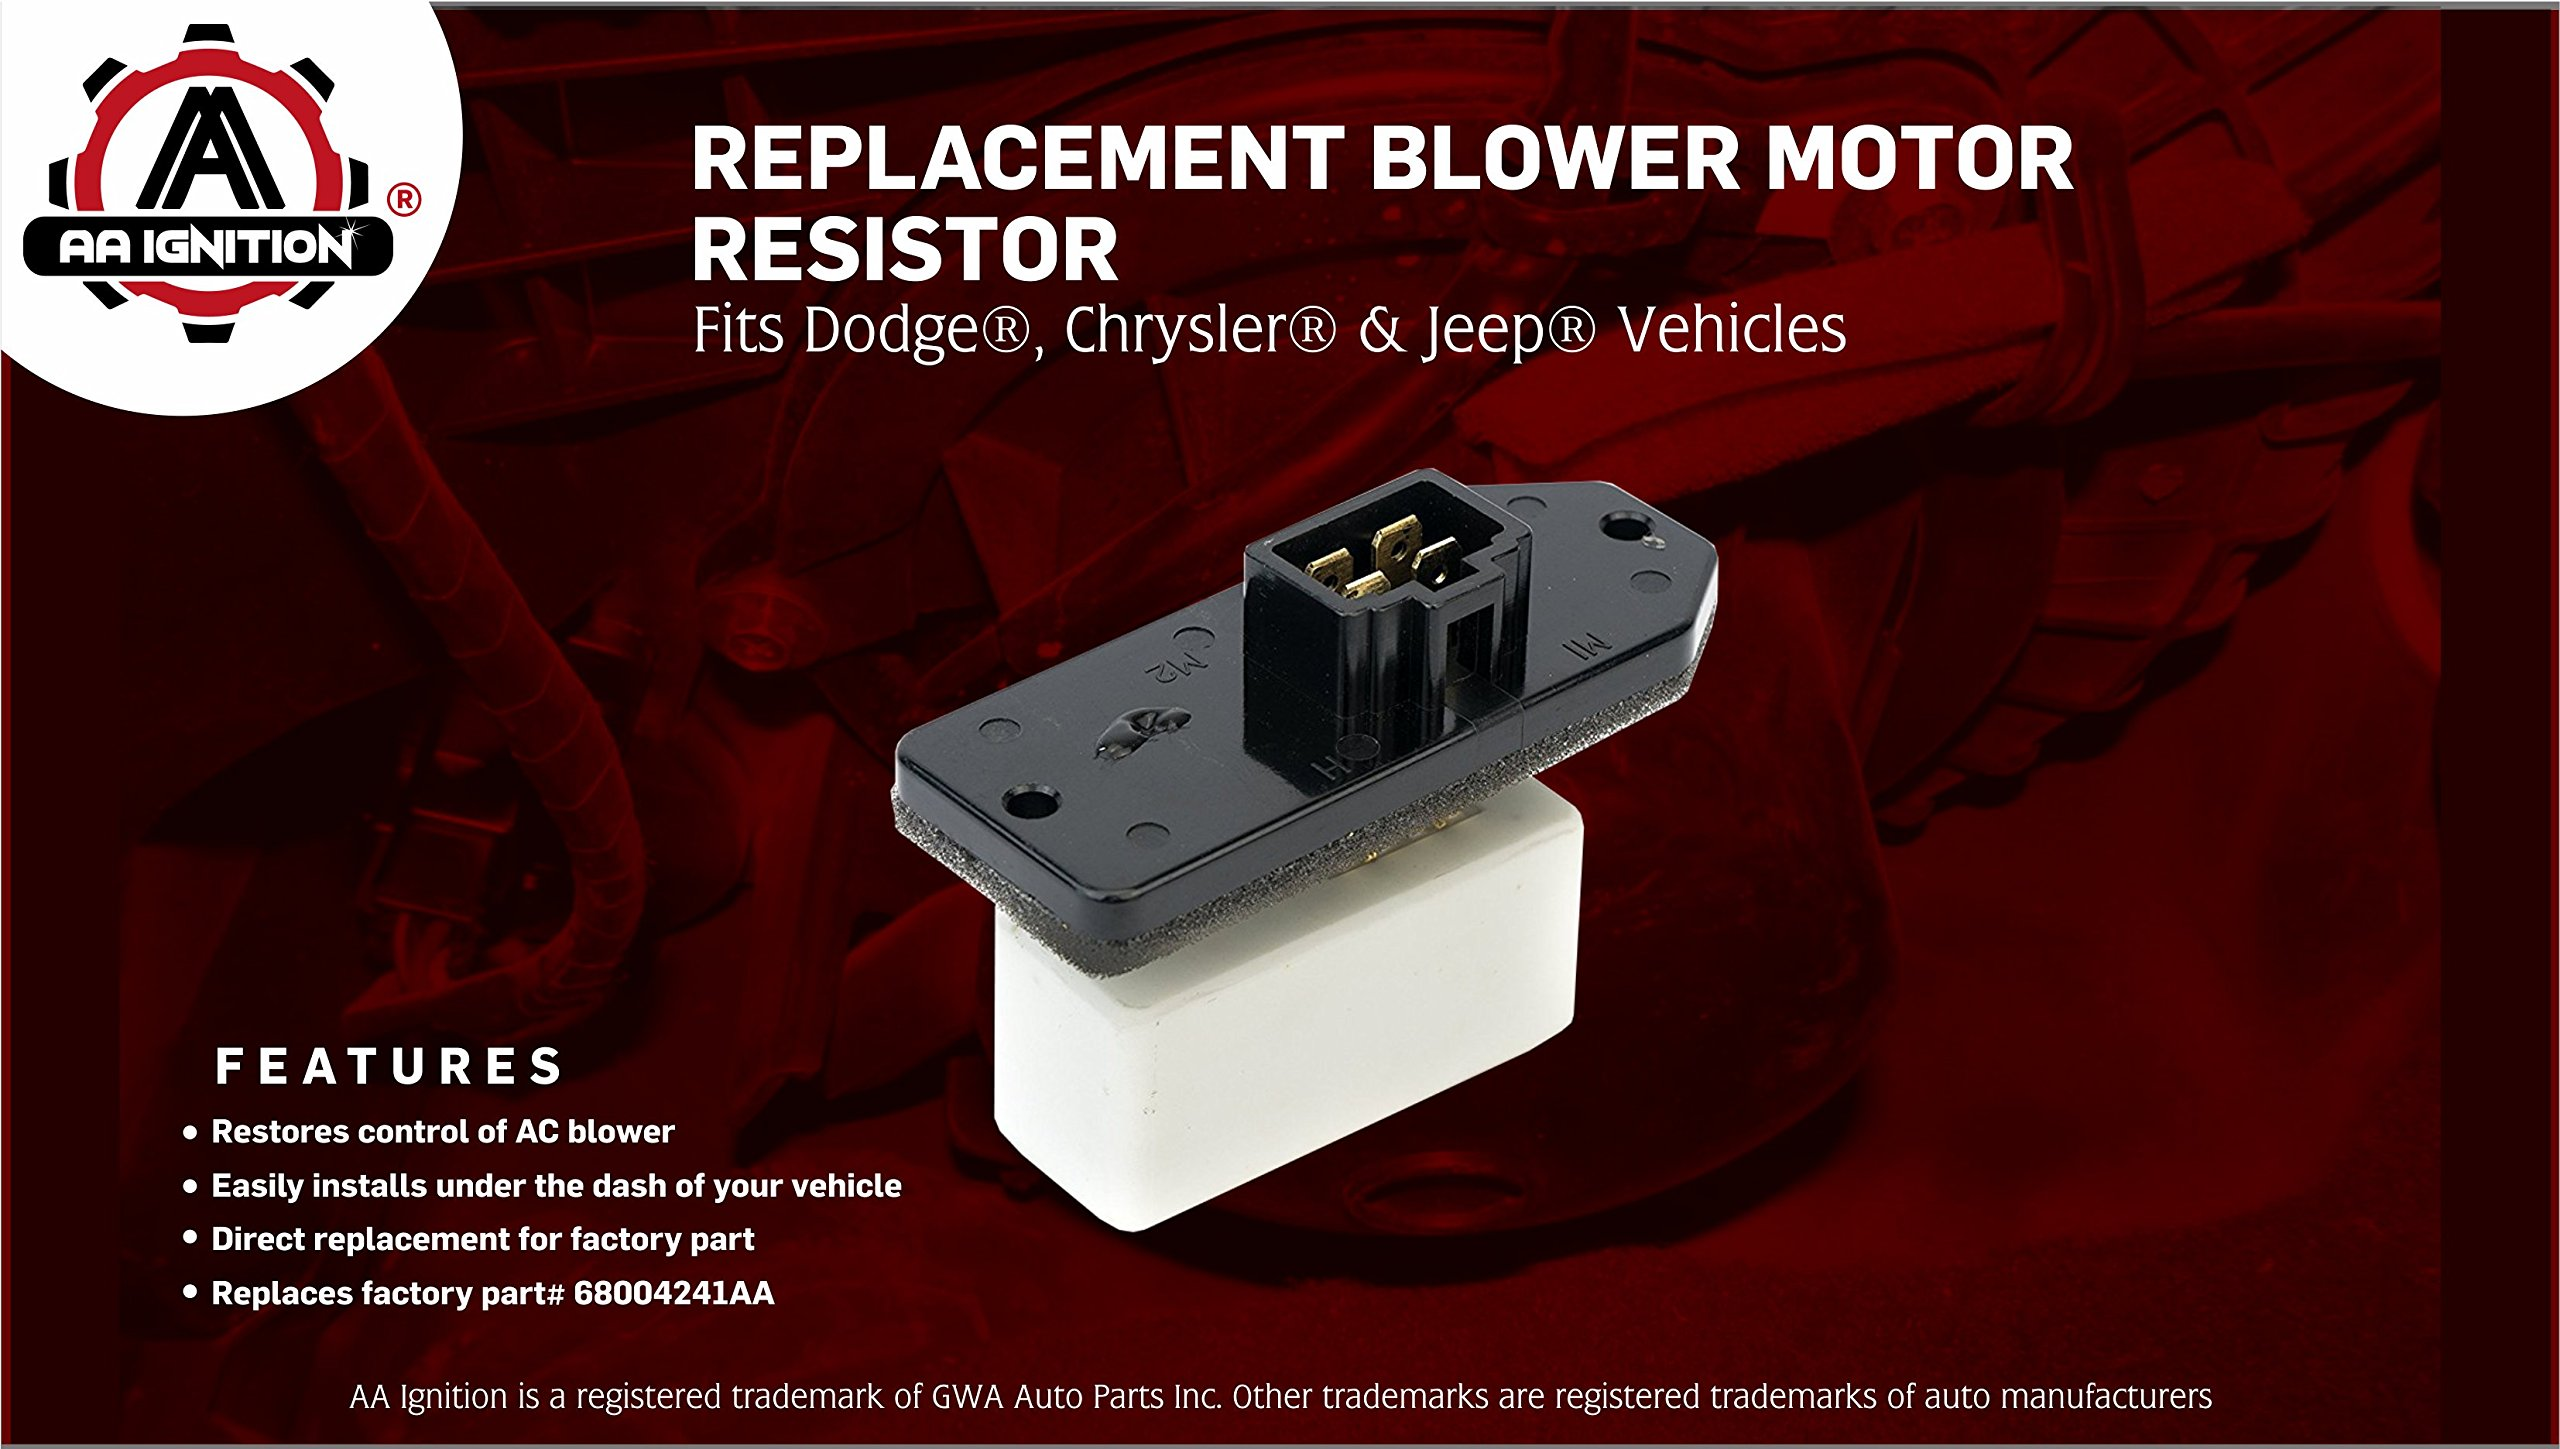 Hvac Blower Motor Fan Resistor Ac Heater Relay Replaces 973 020 2001 Jeep Grand Cherokee Wiring Harness 68004241aa 5012212aa 4720278 Fits Dodge Ram 1500 2500 Chrysler Concorde